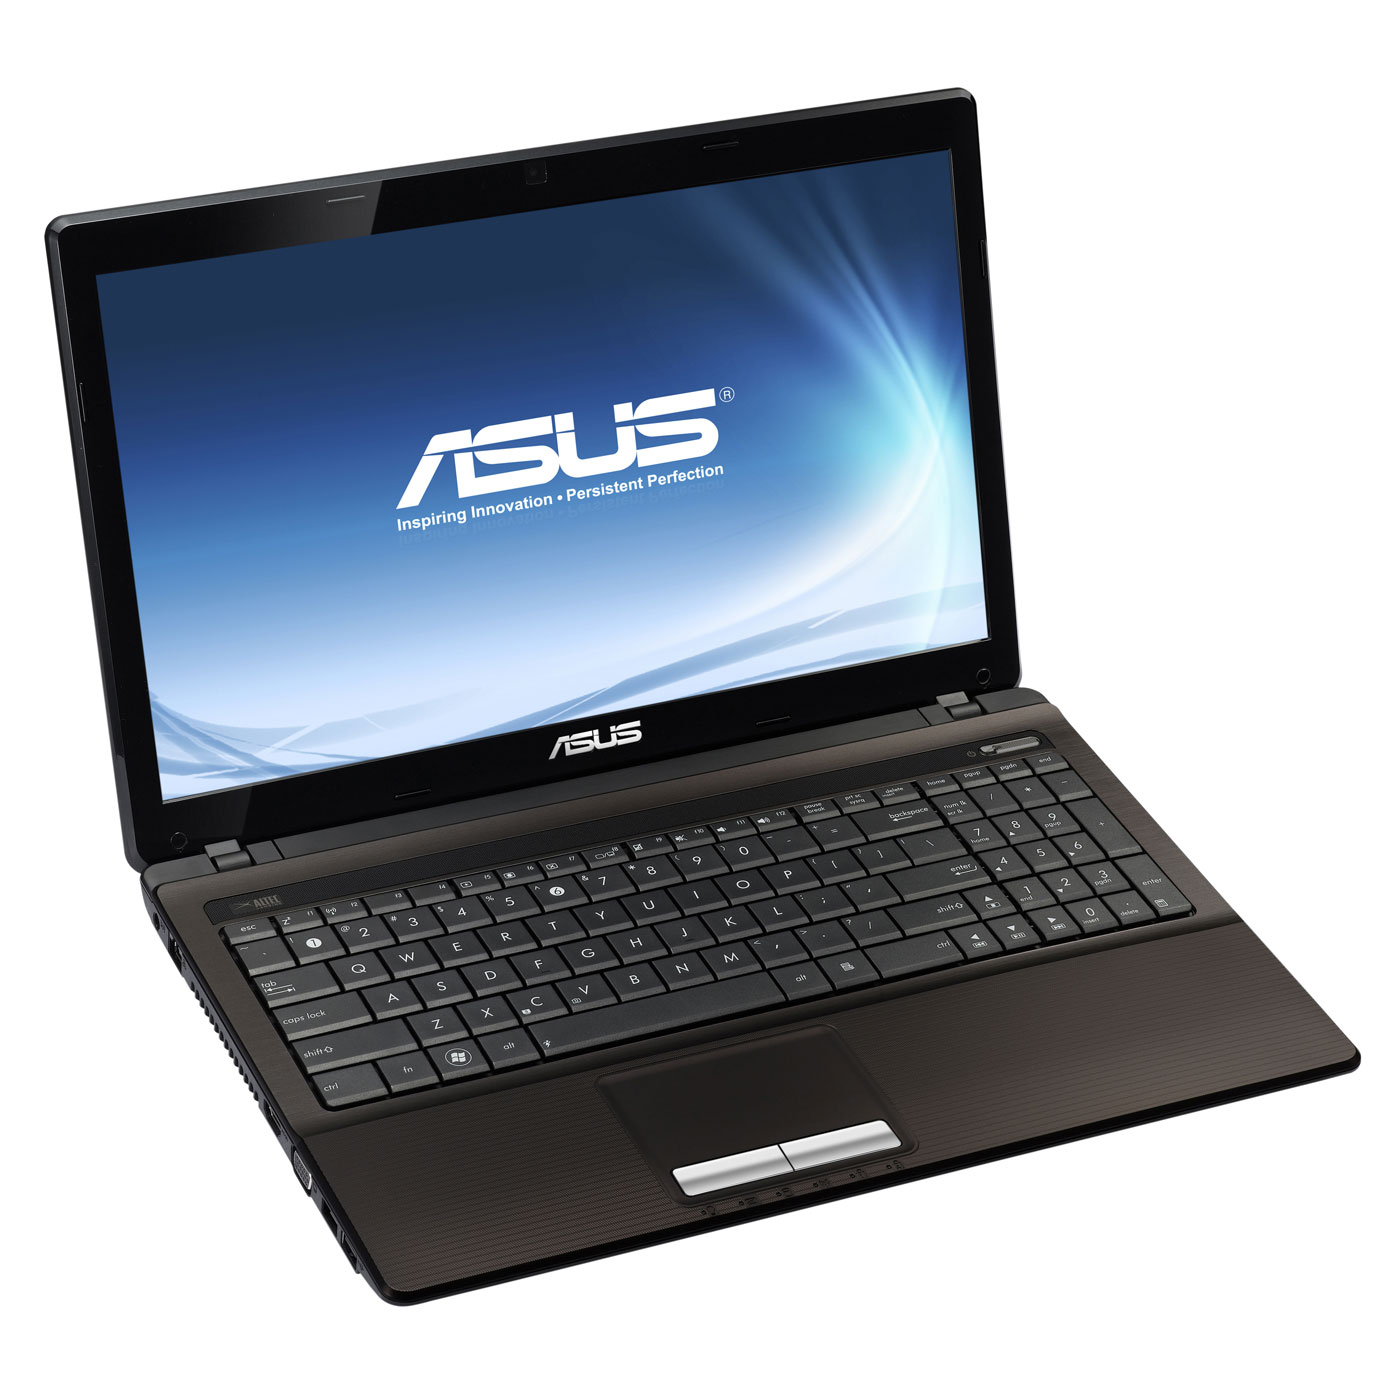 asus x53u sx176v pc portable asus sur. Black Bedroom Furniture Sets. Home Design Ideas